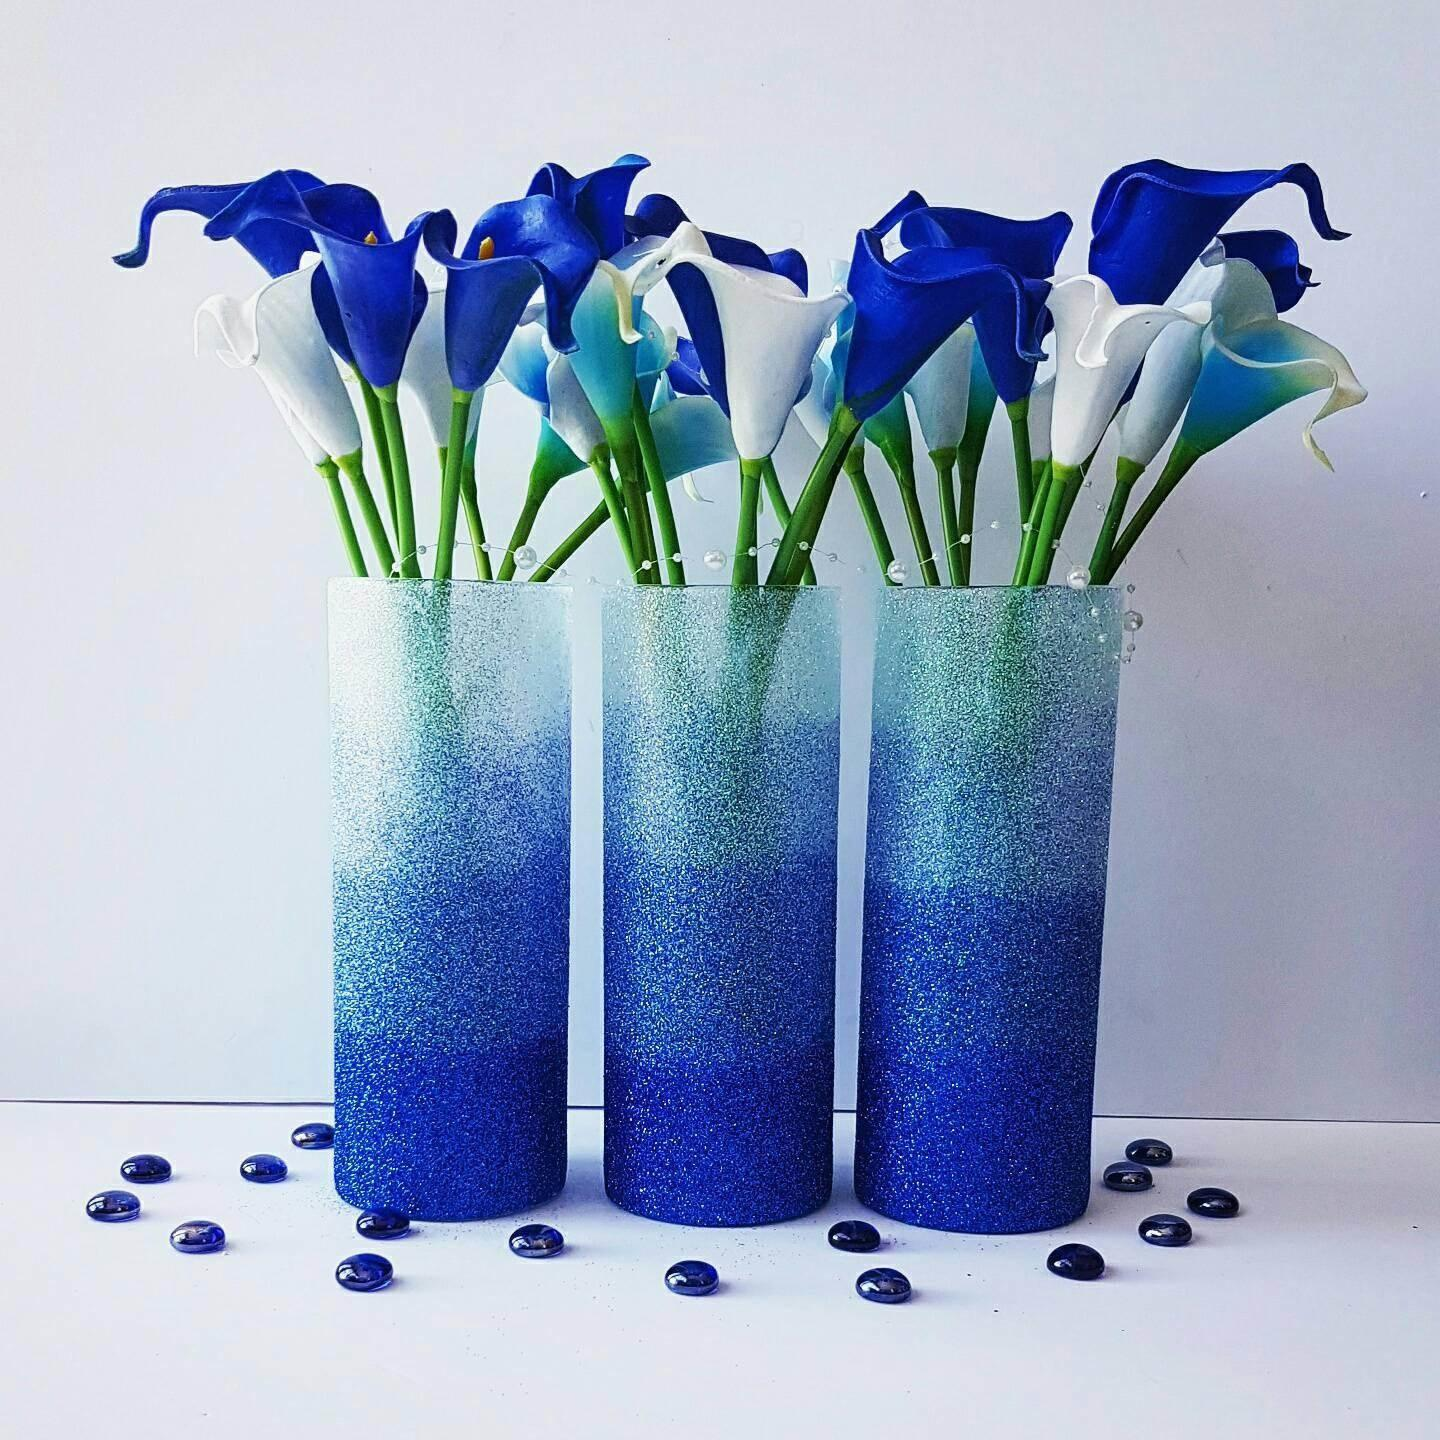 Set Beachy Vases Wedding Centerpiece Blue Ombre Vase